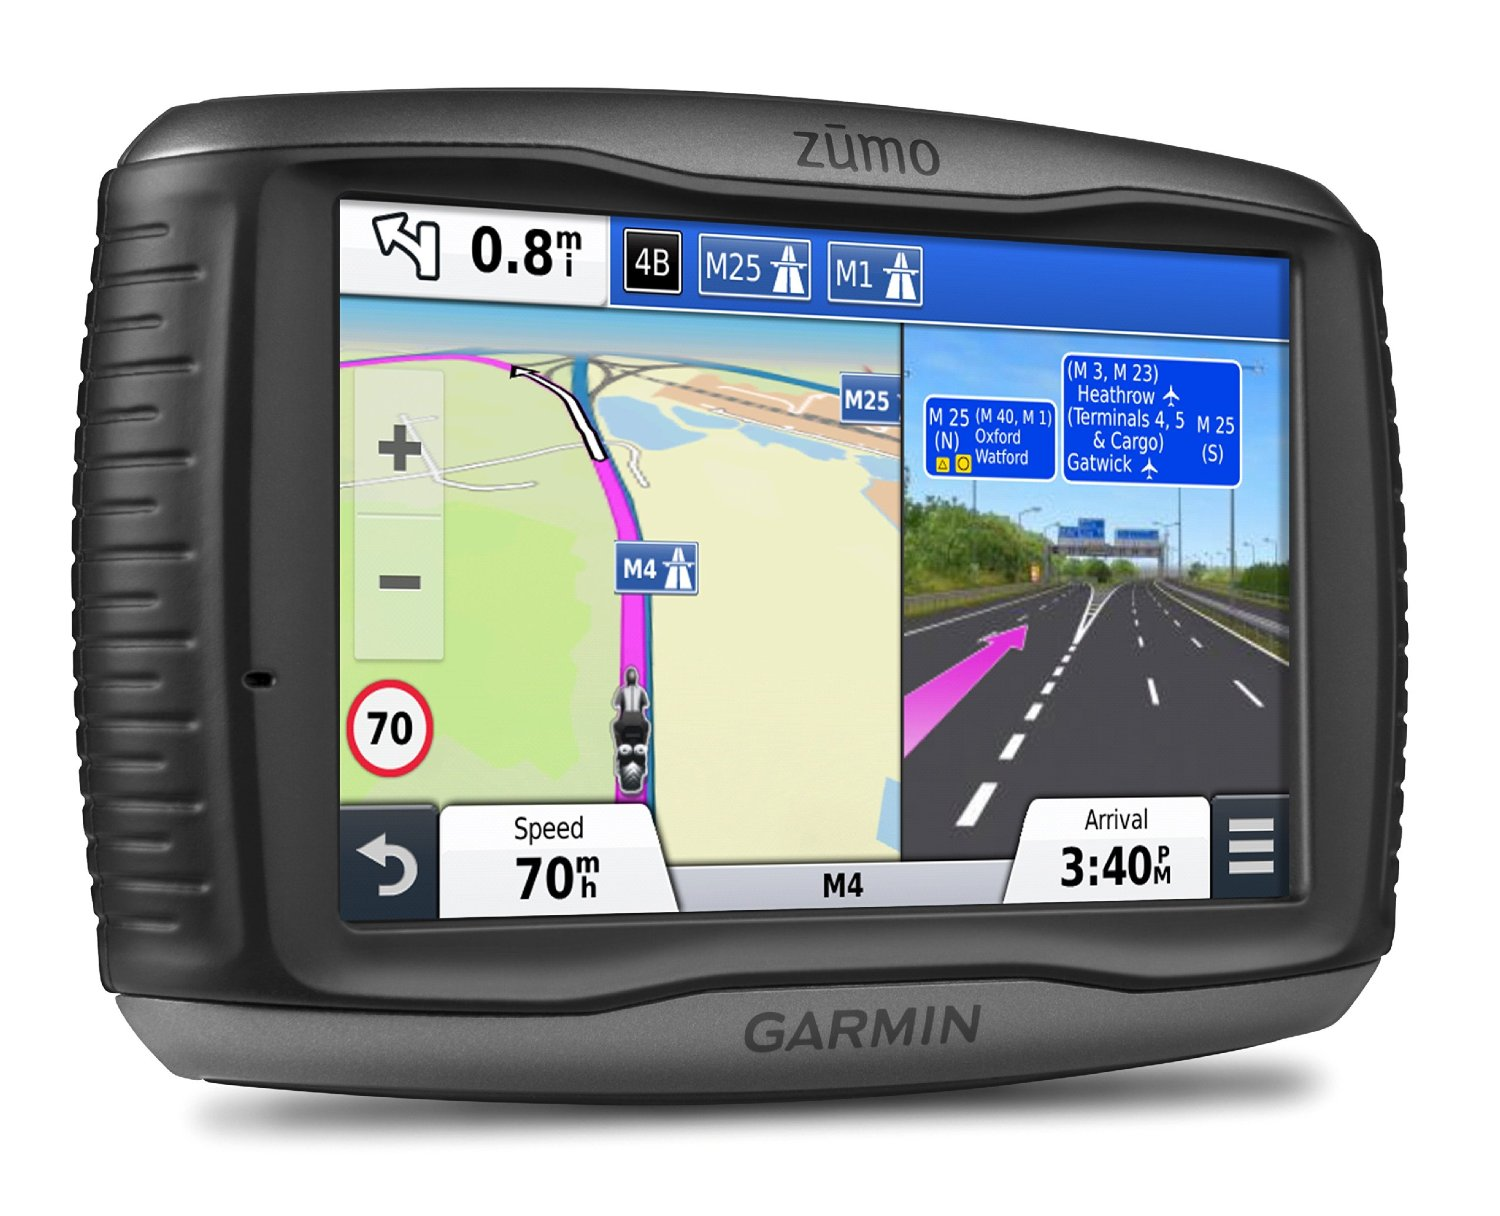 garmin zumo 590lm test motorrad navigation. Black Bedroom Furniture Sets. Home Design Ideas